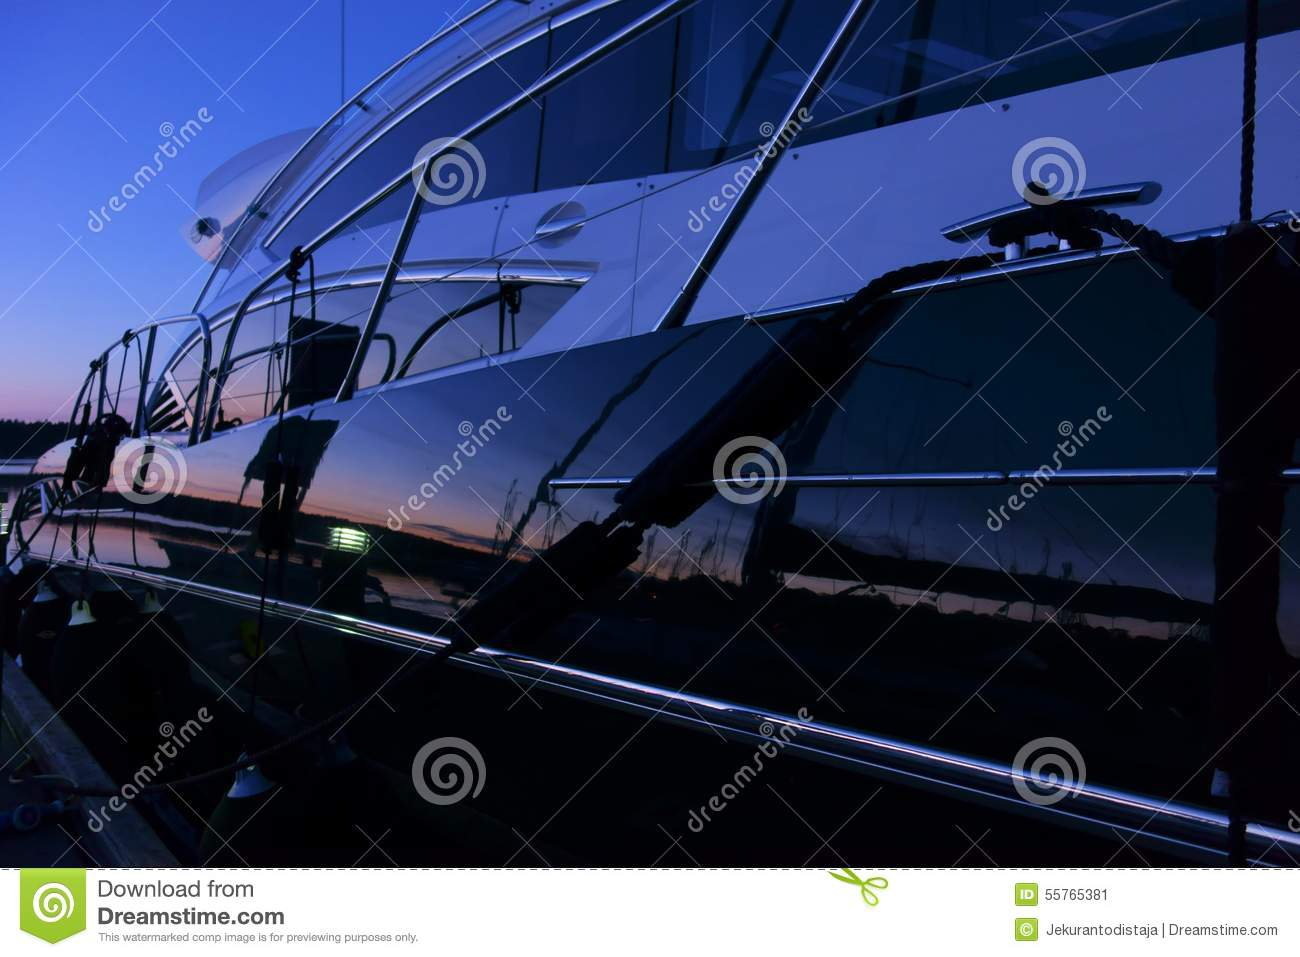 Luxury yacht exterior in the evening